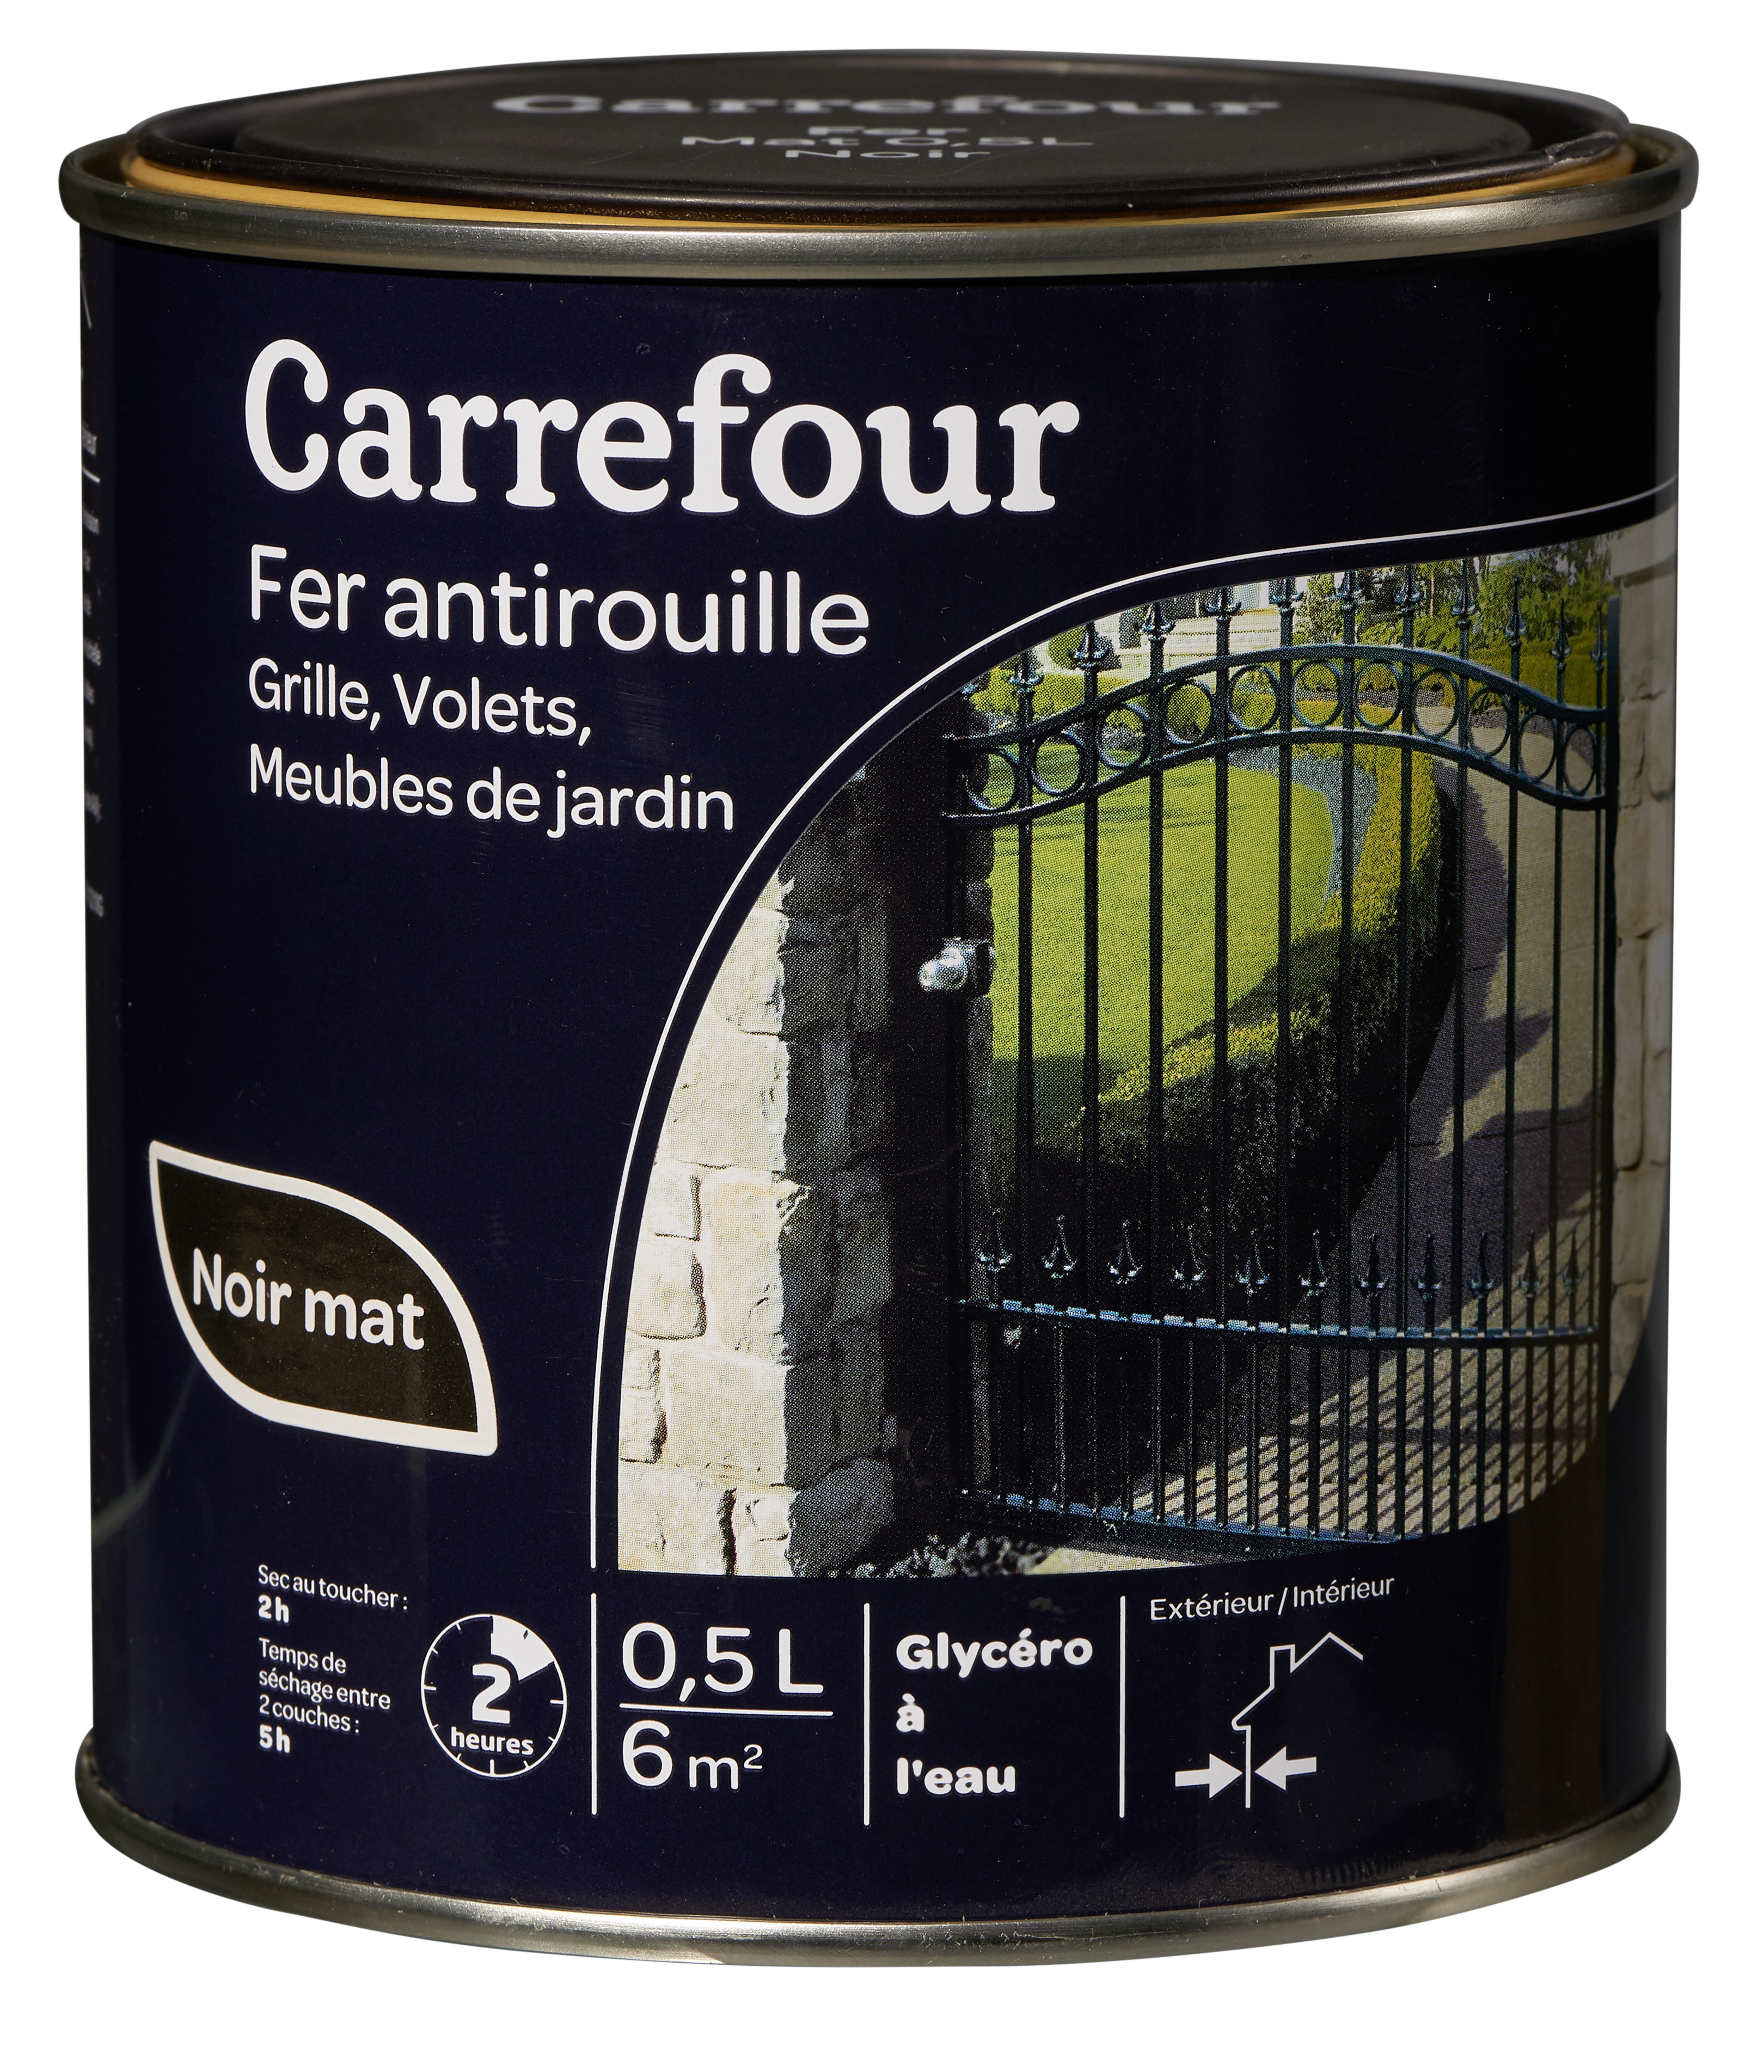 carrefour peinture fer antirouille 0 5l pas cher achat vente peinture ext rieure. Black Bedroom Furniture Sets. Home Design Ideas